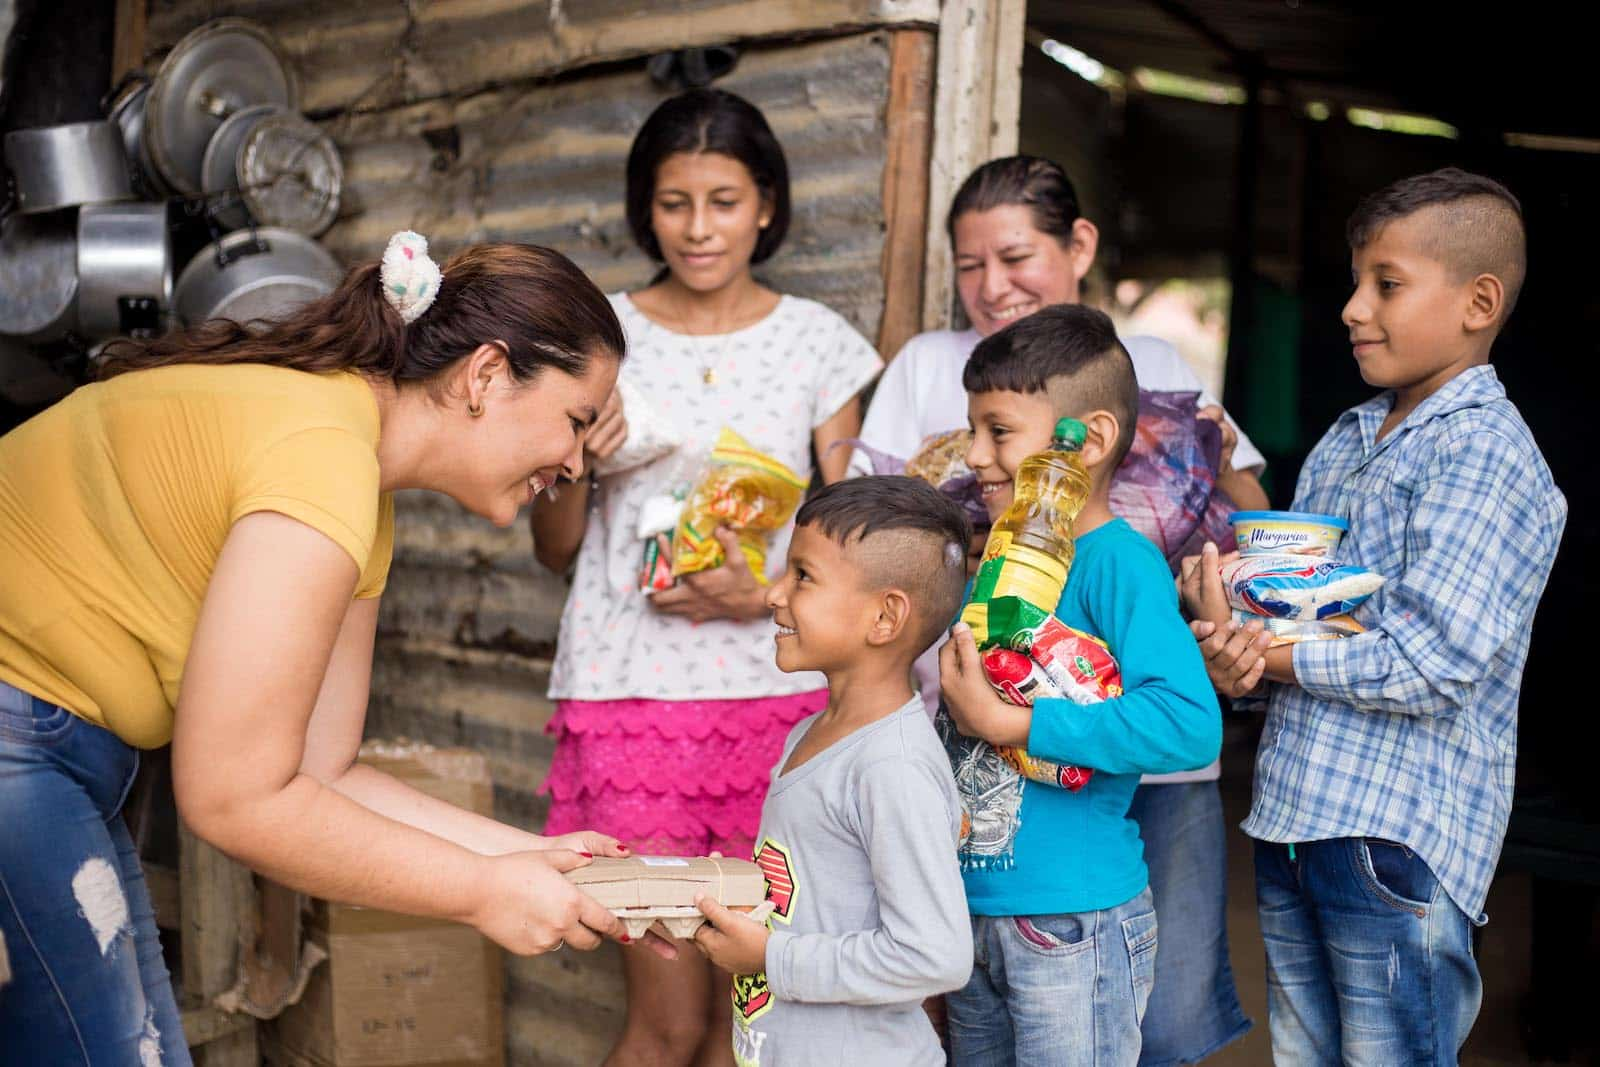 A woman leans over, handing groceries to a boy whose family has been feeding Venezuelans who fled to Colombia out of hunger.